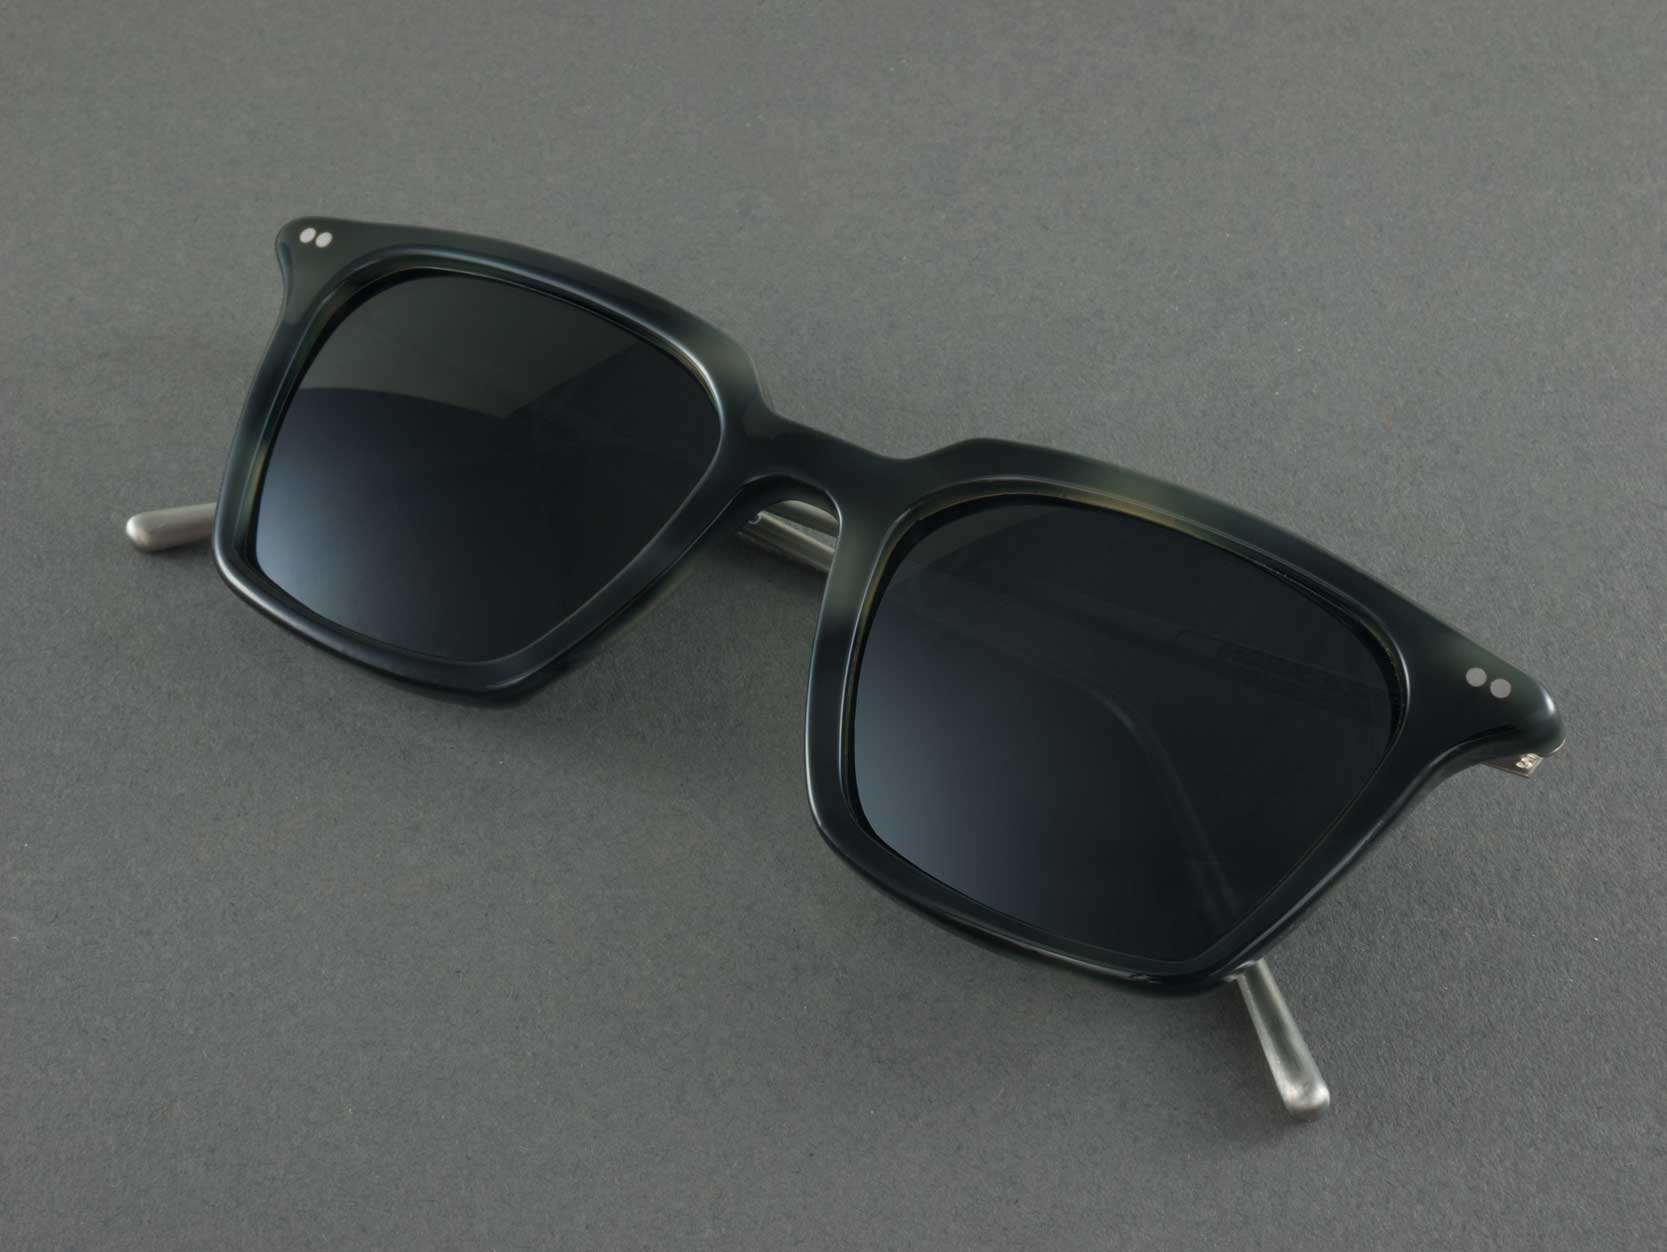 Square Polarised sunglasses Frame folded